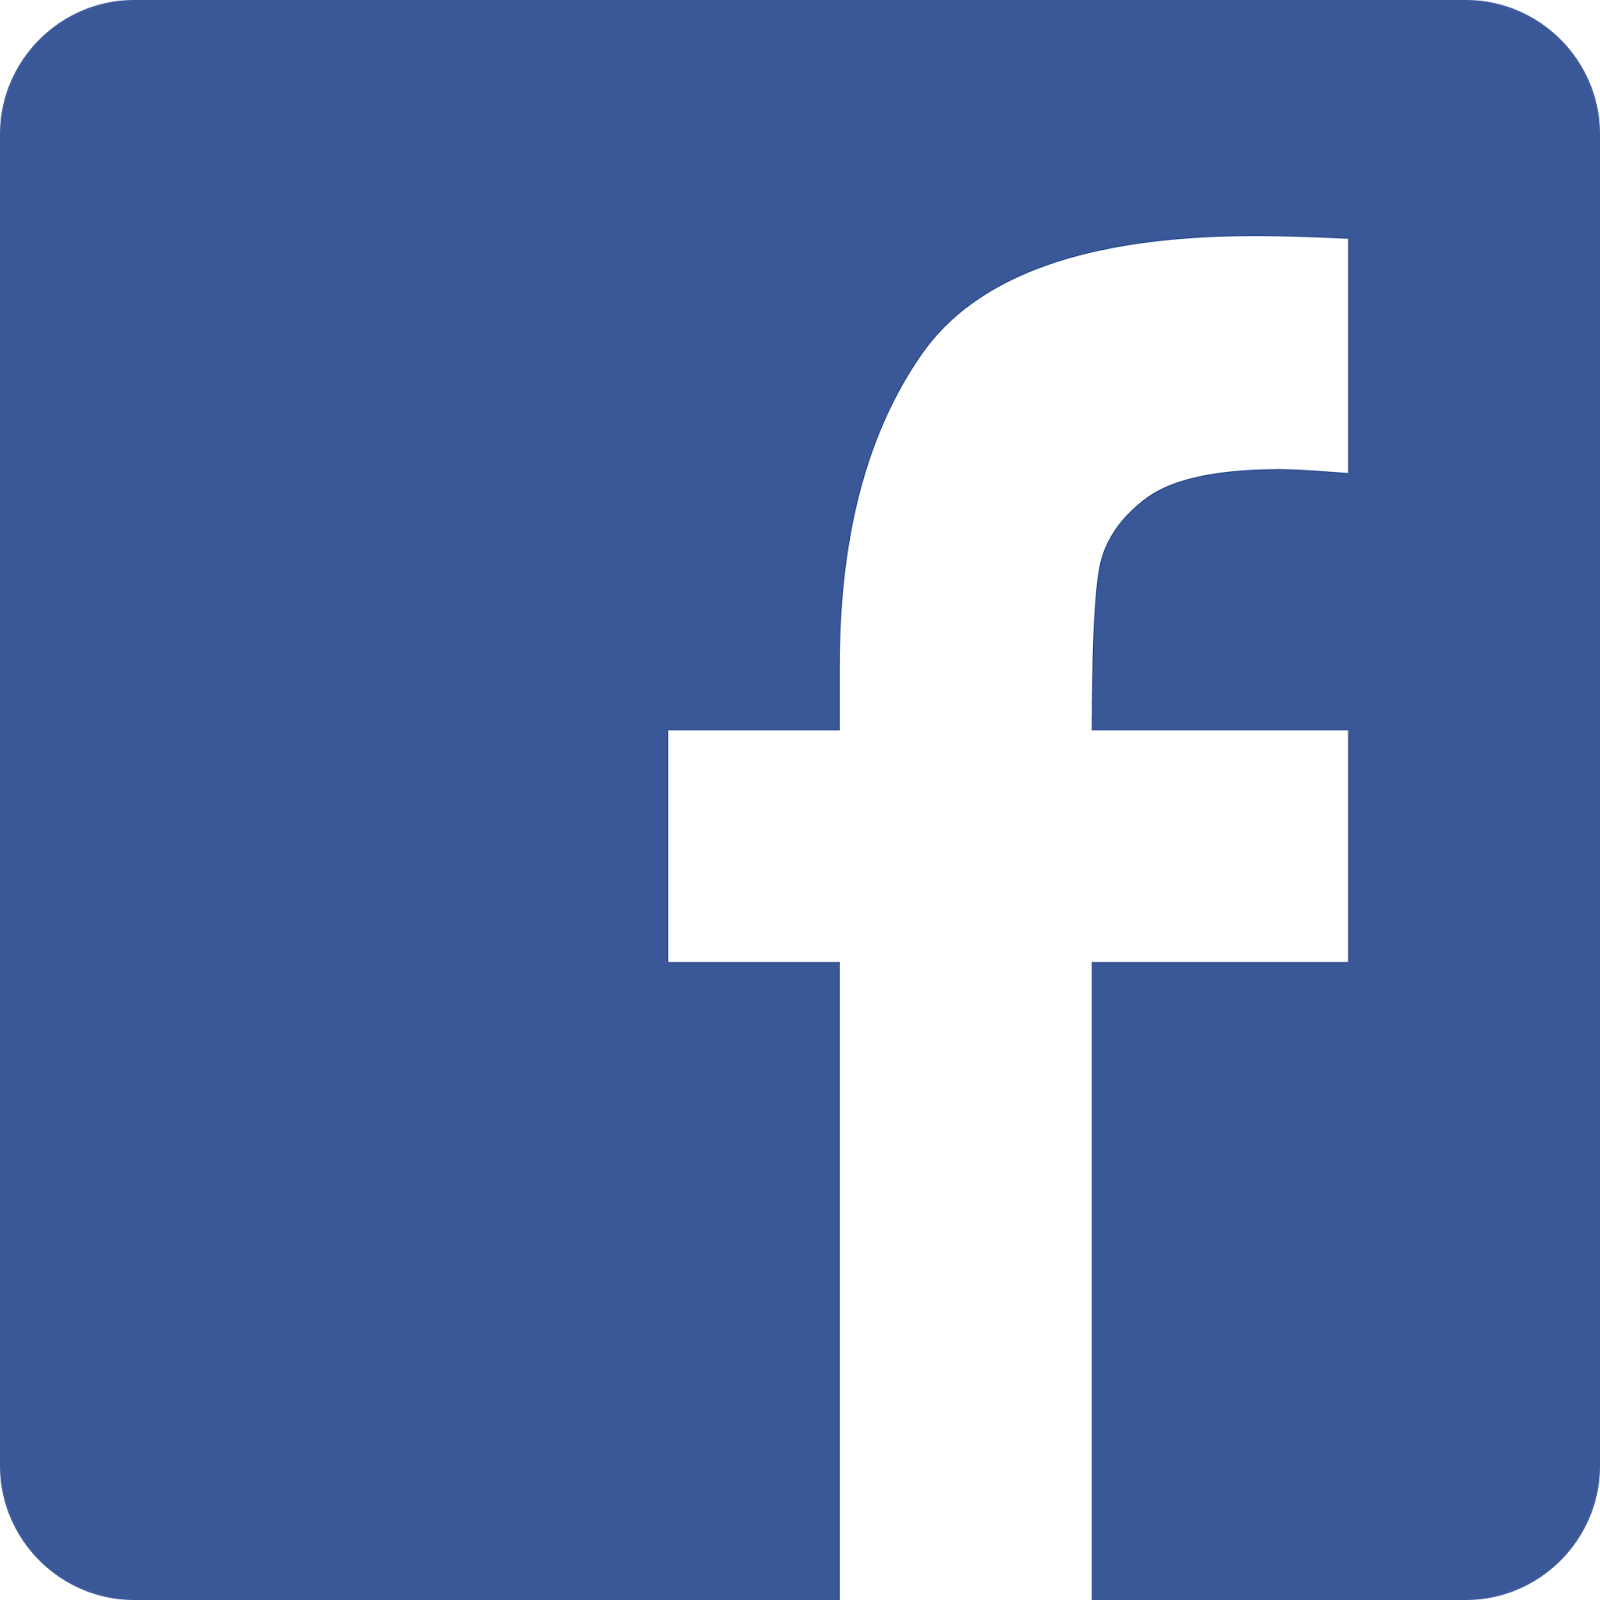 facebook-transparent-logo-png-0